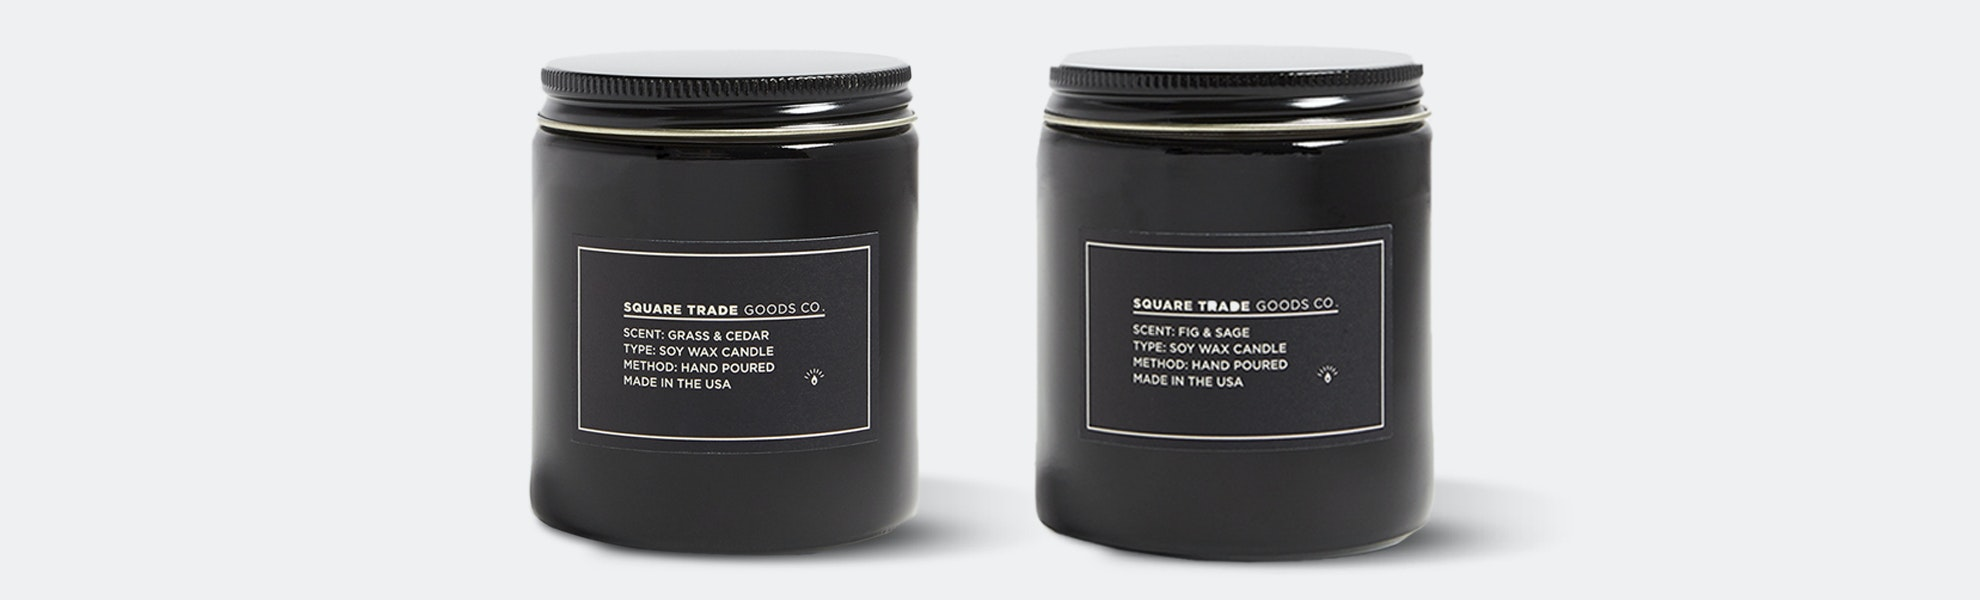 Square Trade Goods Candles (2-Pack)